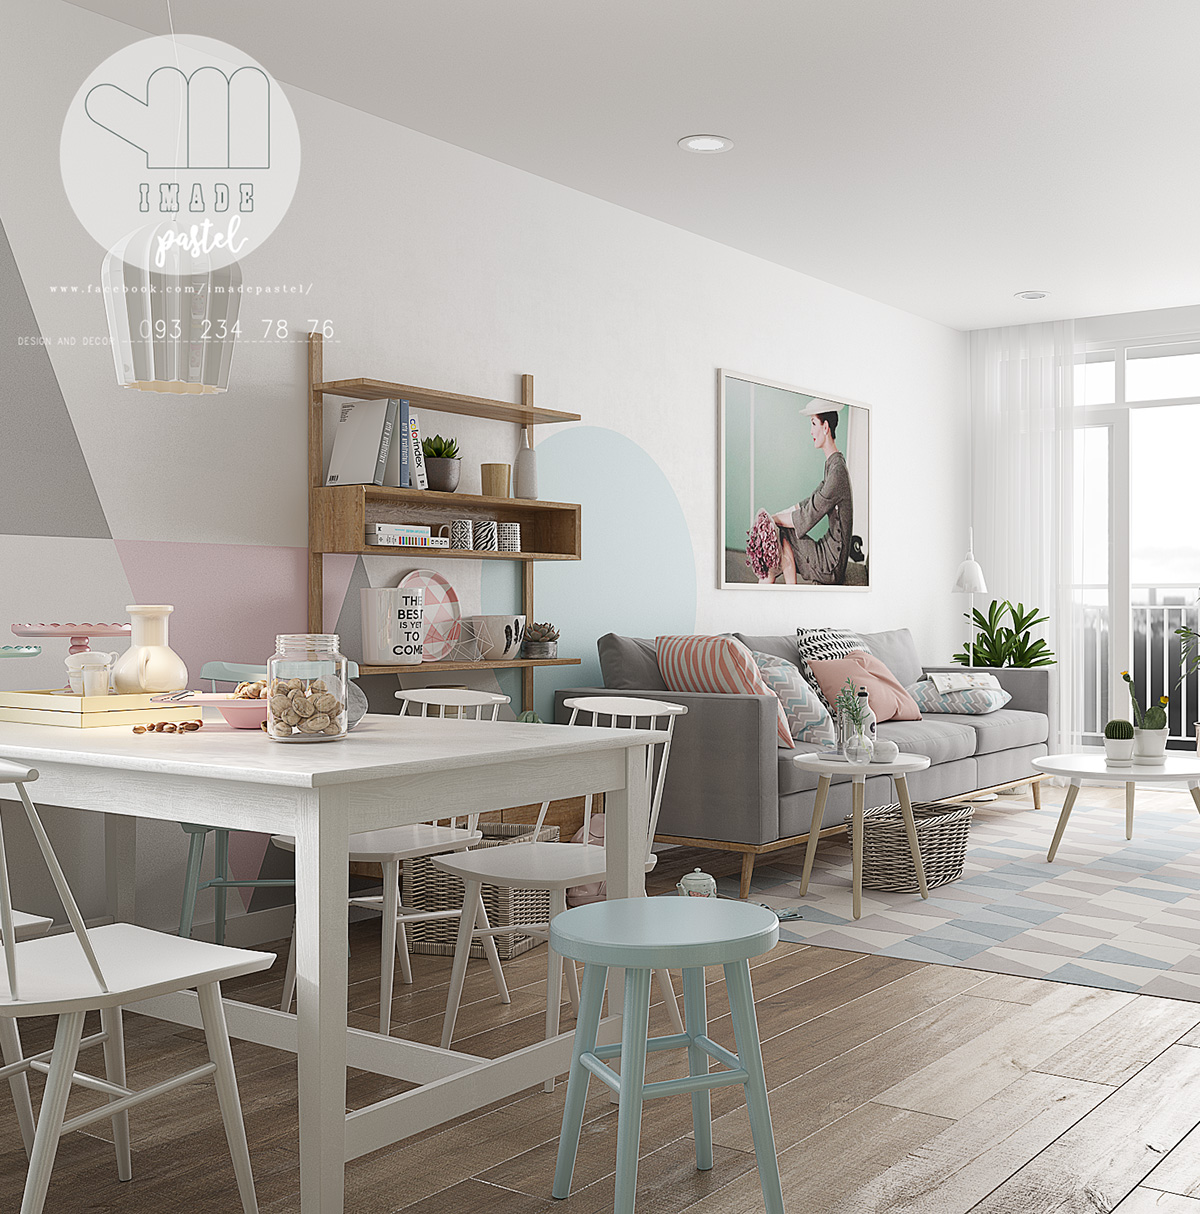 21 Scandinavian Dining Room Designs Decorating Ideas: Scandinavian Interior Designs With Pastel And Lightly